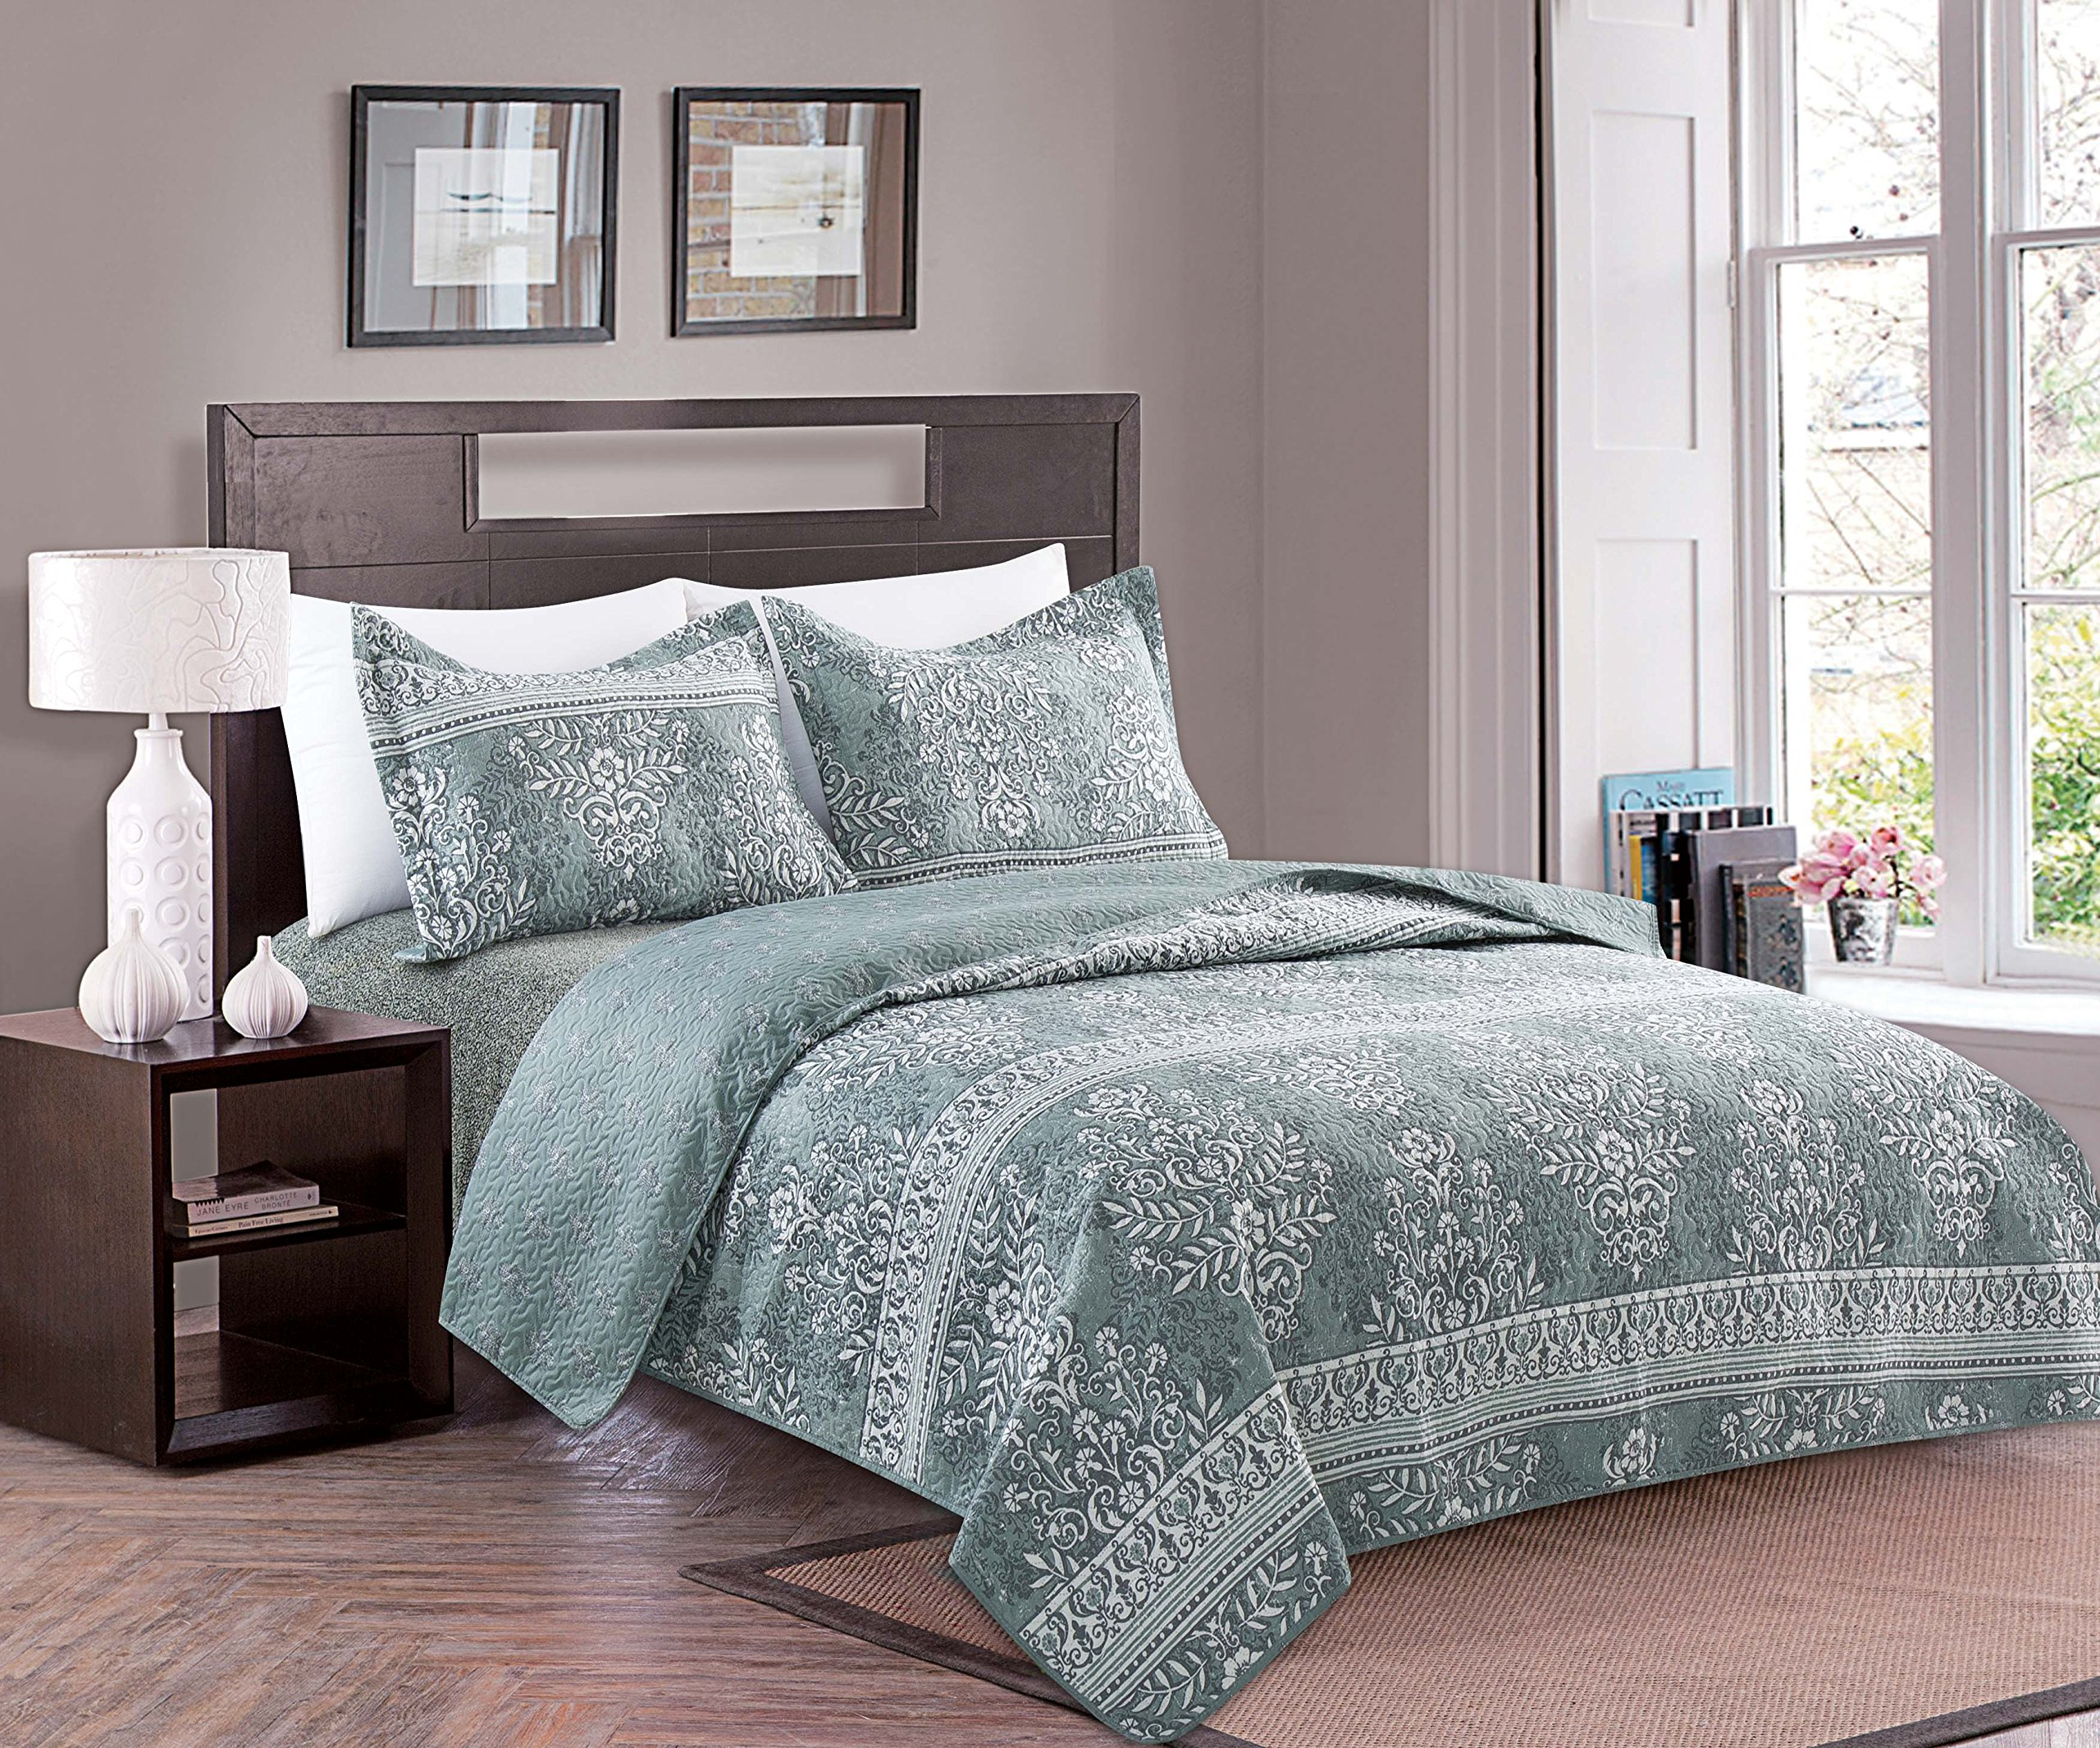 Home Fashion Designs 3-Piece Reversible Quilt Set with Shams. All-Season Bedspread with Modern Pattern. Ambrose Collection By Brand. (Twin, Multi)